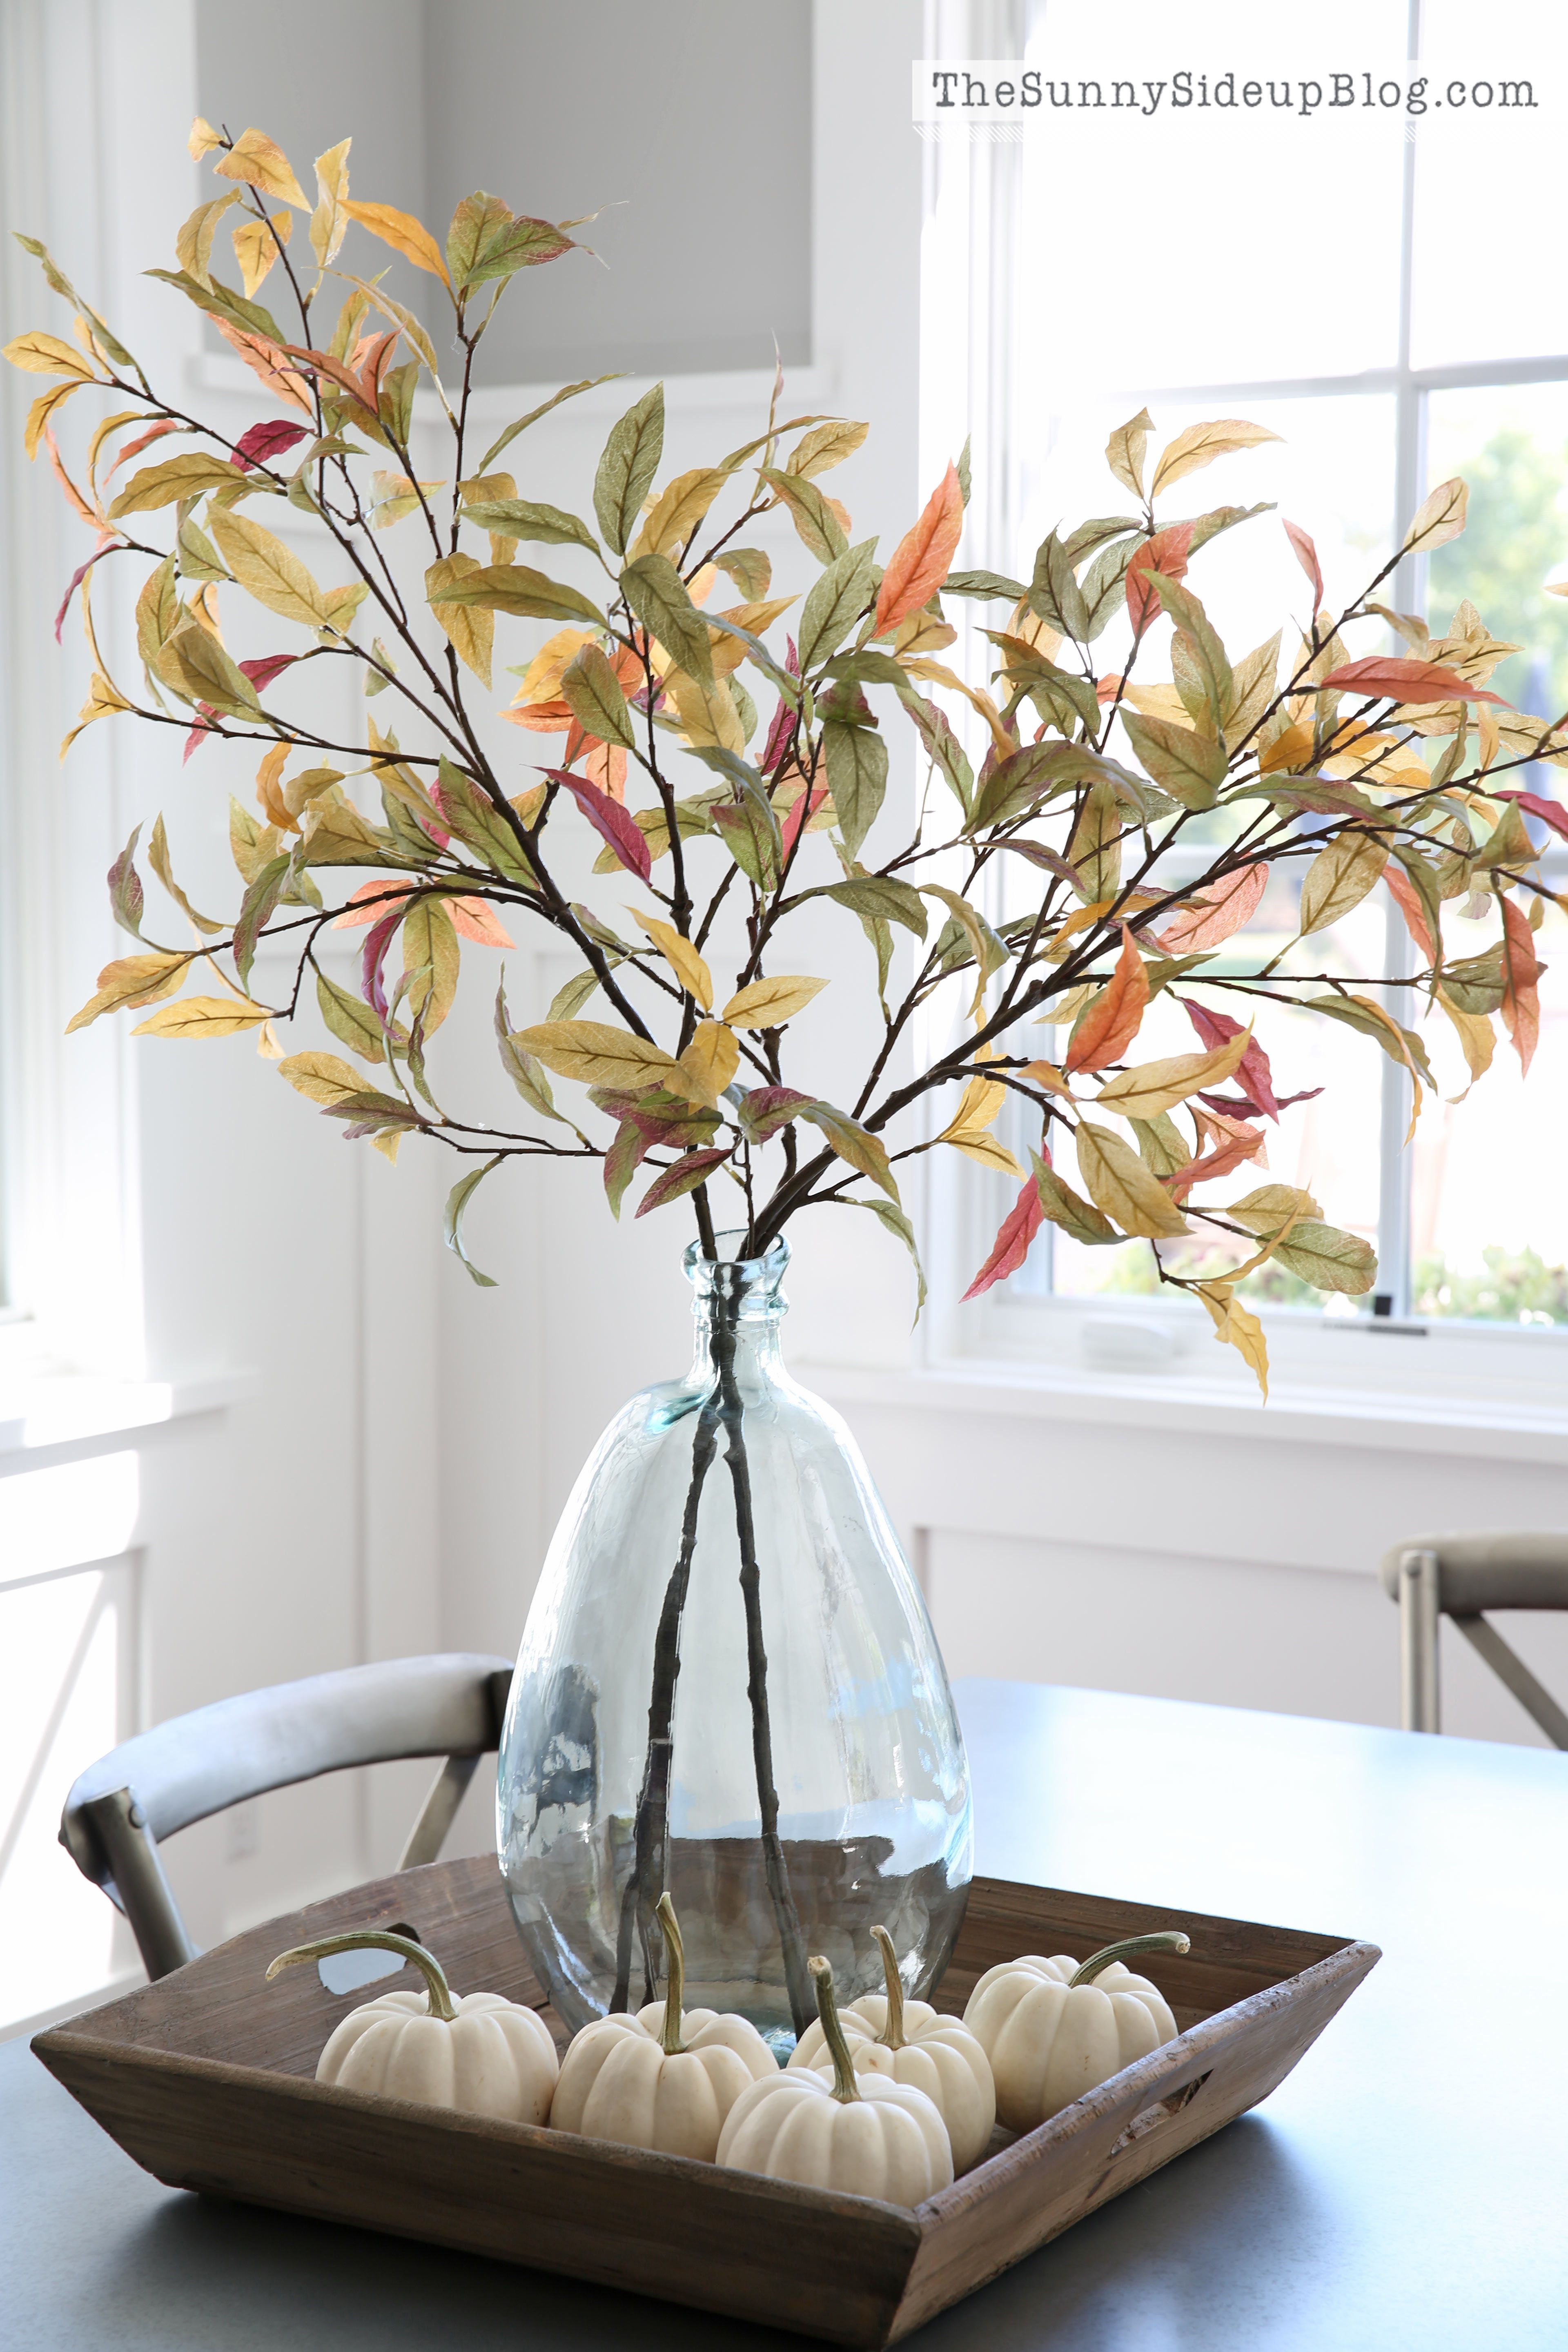 pumpkins as vases for centerpieces of fall into home tour halloween fall pinterest fall decor with pretty fall arrangement branches of fall leaves in a cleat vase with mini white pumpkins in